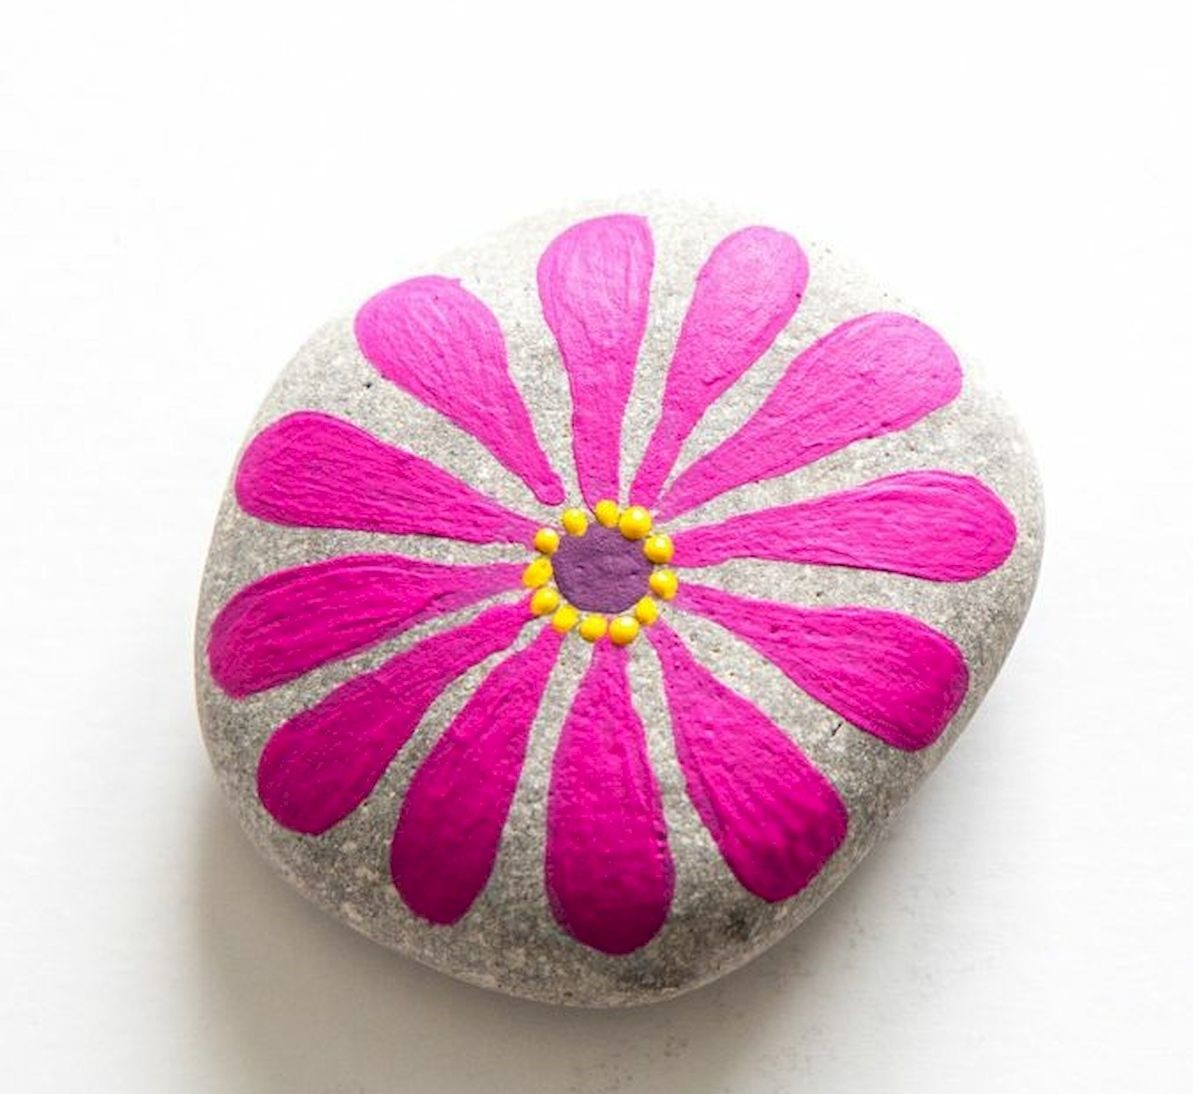 60+ Beautiful DIY Painted Rocks Flowers Ideas (19)